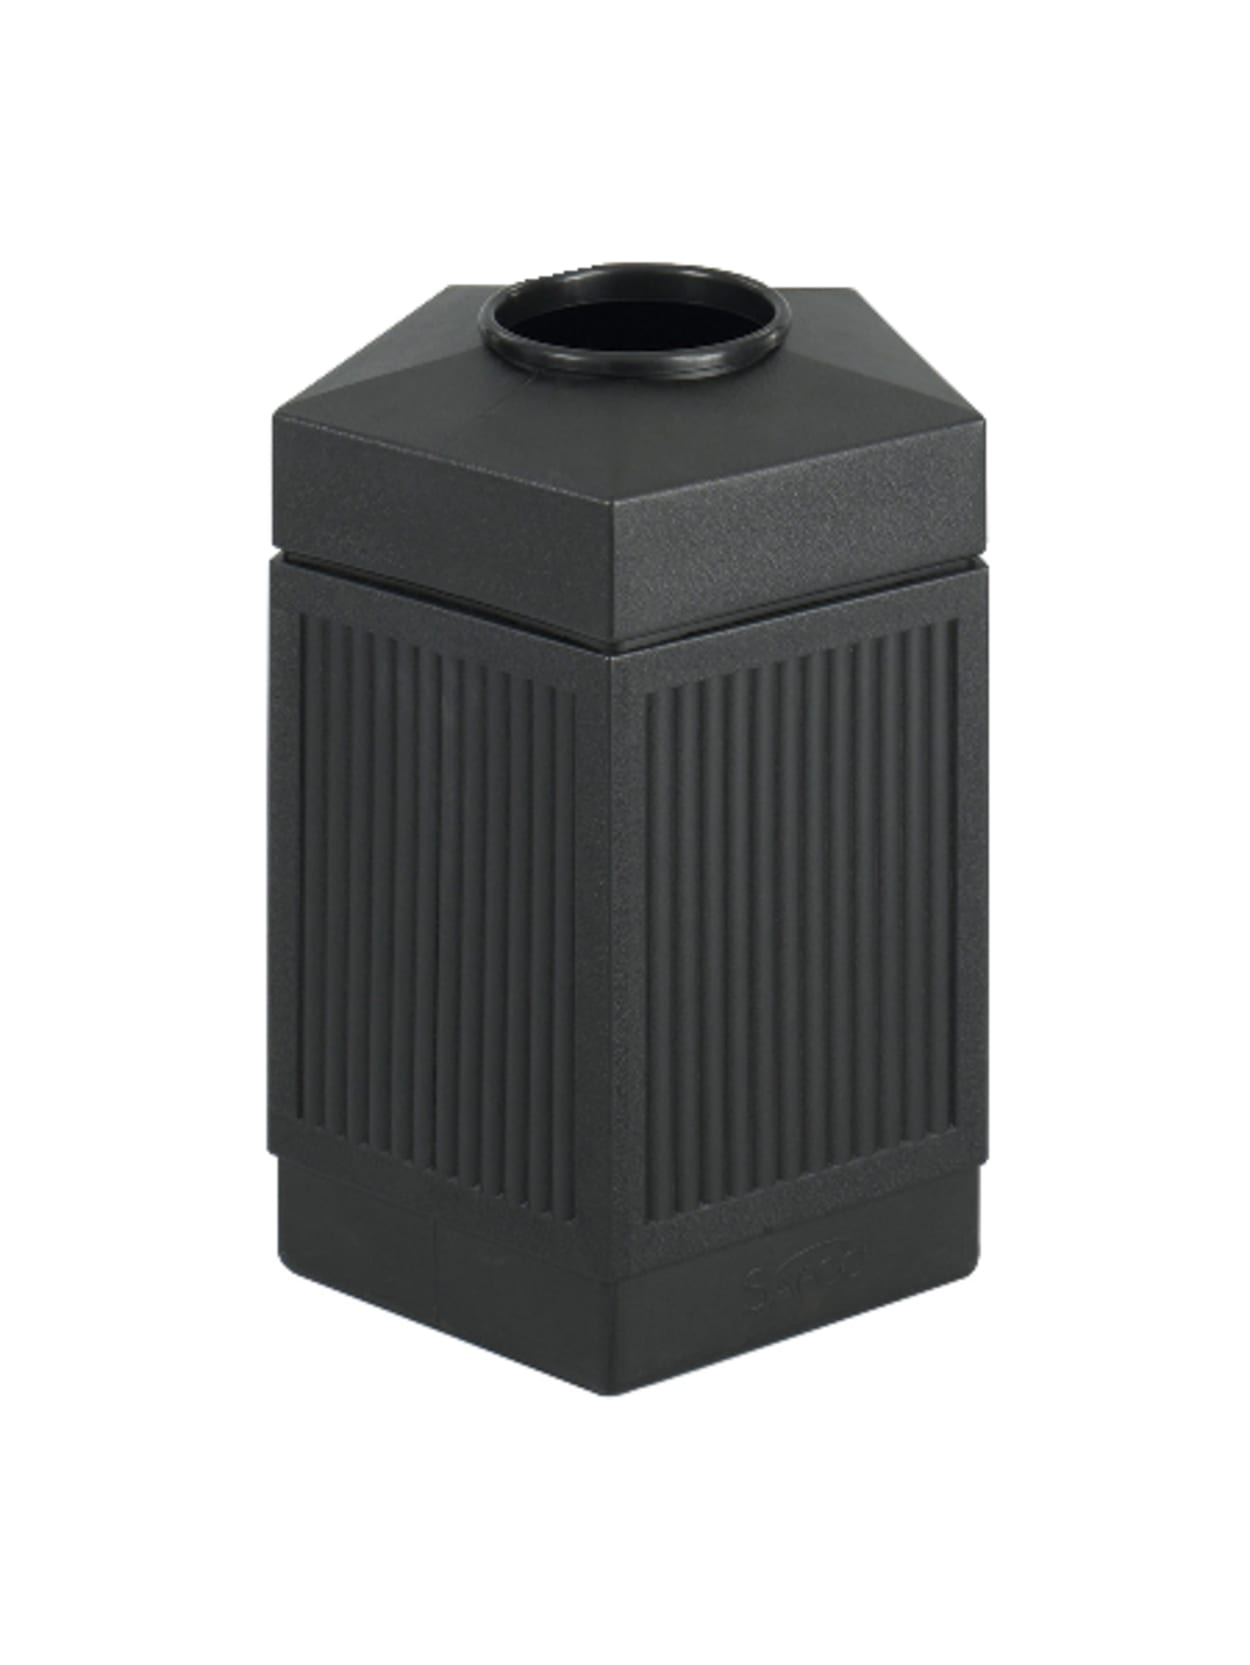 Safco Canmeleon Plastic Indooroutdoor Trash Receptacle 45 Gallons 31 12 H X 24 W X 23 D Black Office Depot